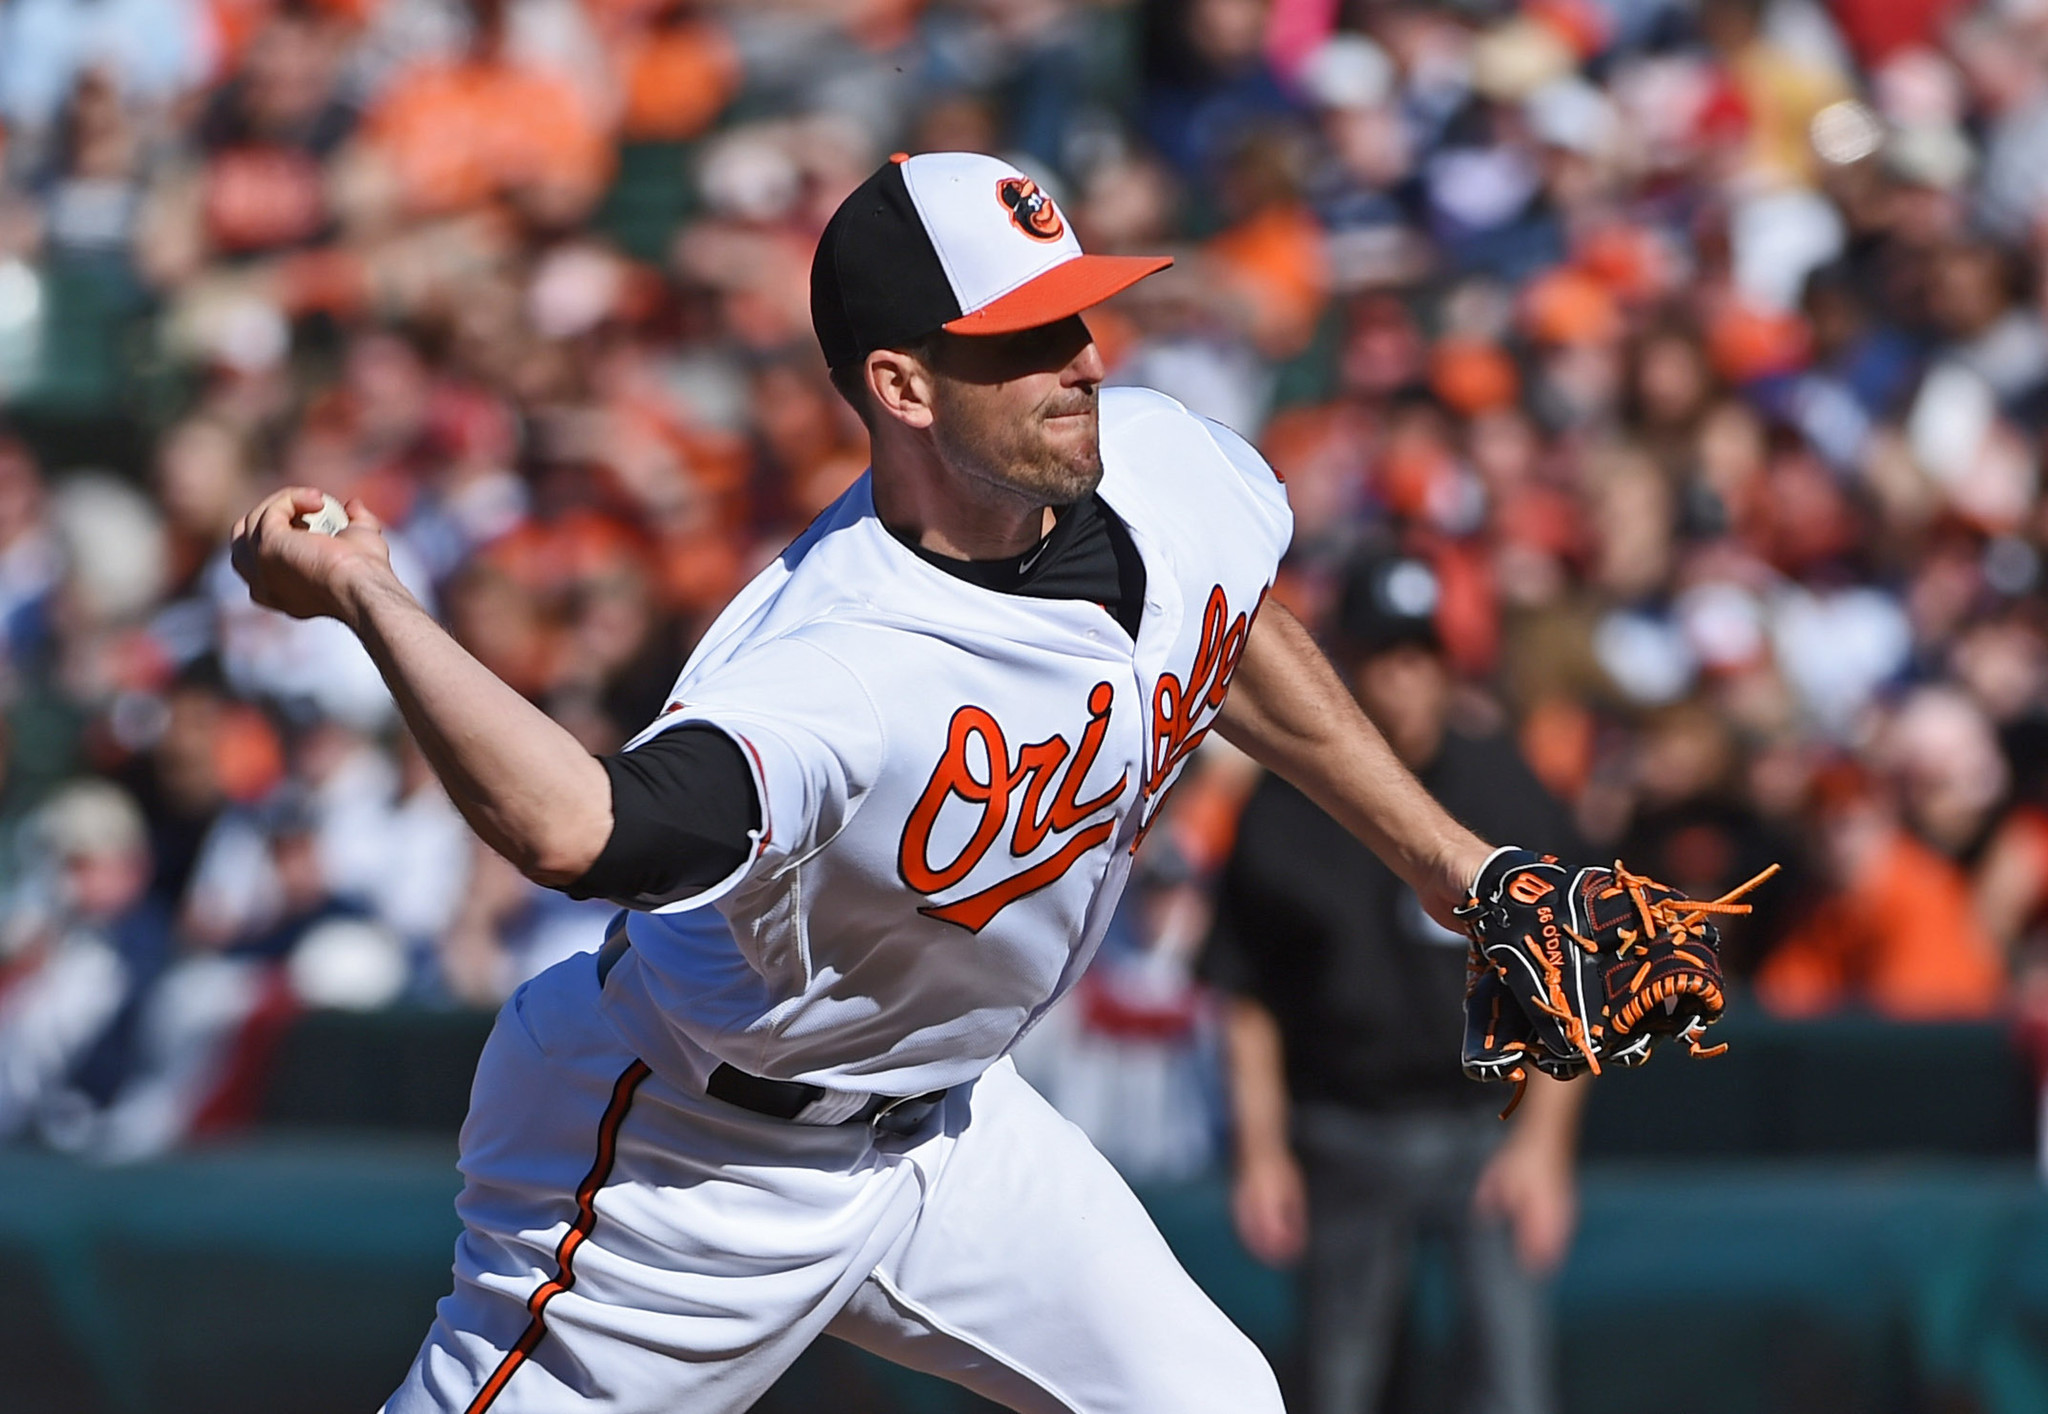 Bal-orioles-on-deck-what-to-watch-saturday-at-blue-jays-20170414